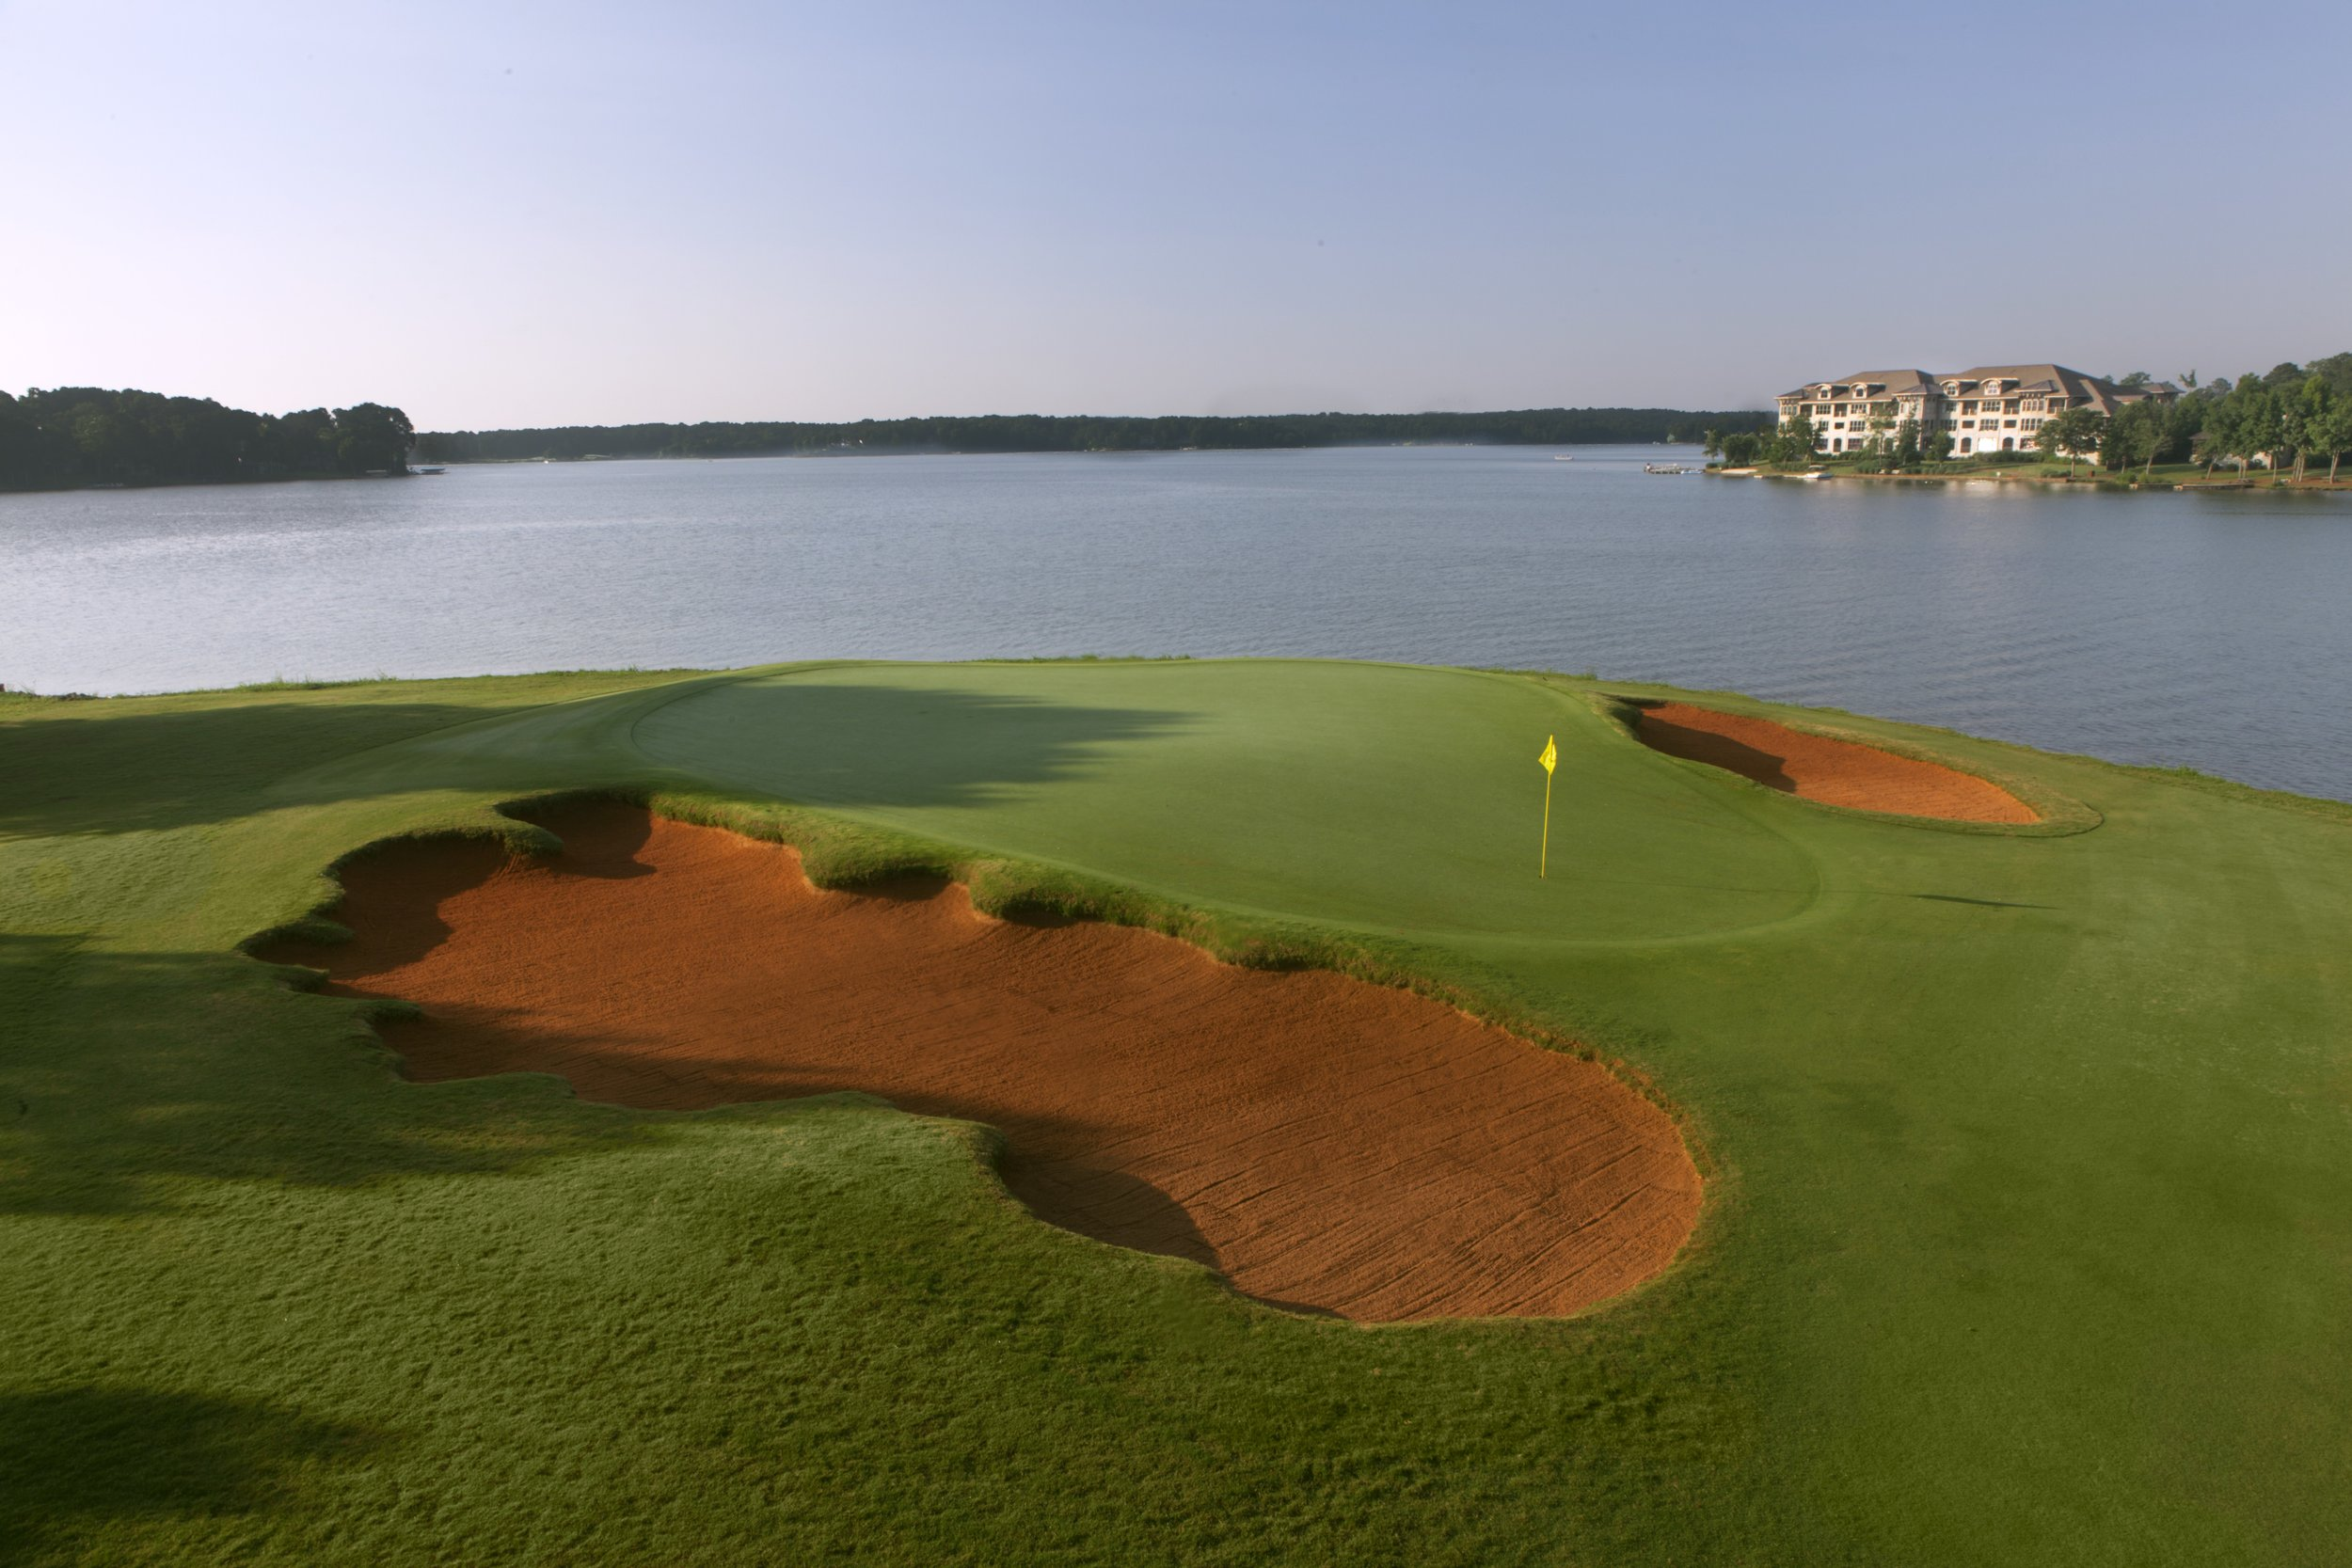 Cuscowilla - Enclave Lake Oconee Homeowners have Exclusive Full Golf-Memberships available!Just a short boat ride from Enclave private boat slips to Cuscowilla Clubhouse.#1 Residential Golf Course in Georgia, 2019 - GolfweekChallenging Golf. Easy Living.Tee it up on a stunning Coore-Crenshaw masterpiece that is truly beyond comparison take in picturesque lake views stretching out to the horizon and find yourself at peace in an authentic, private golf community with a laid-back take on true Southern Hospitality. This is Cuscowilla, a lakefront legacy your family will cherish for generations to come.